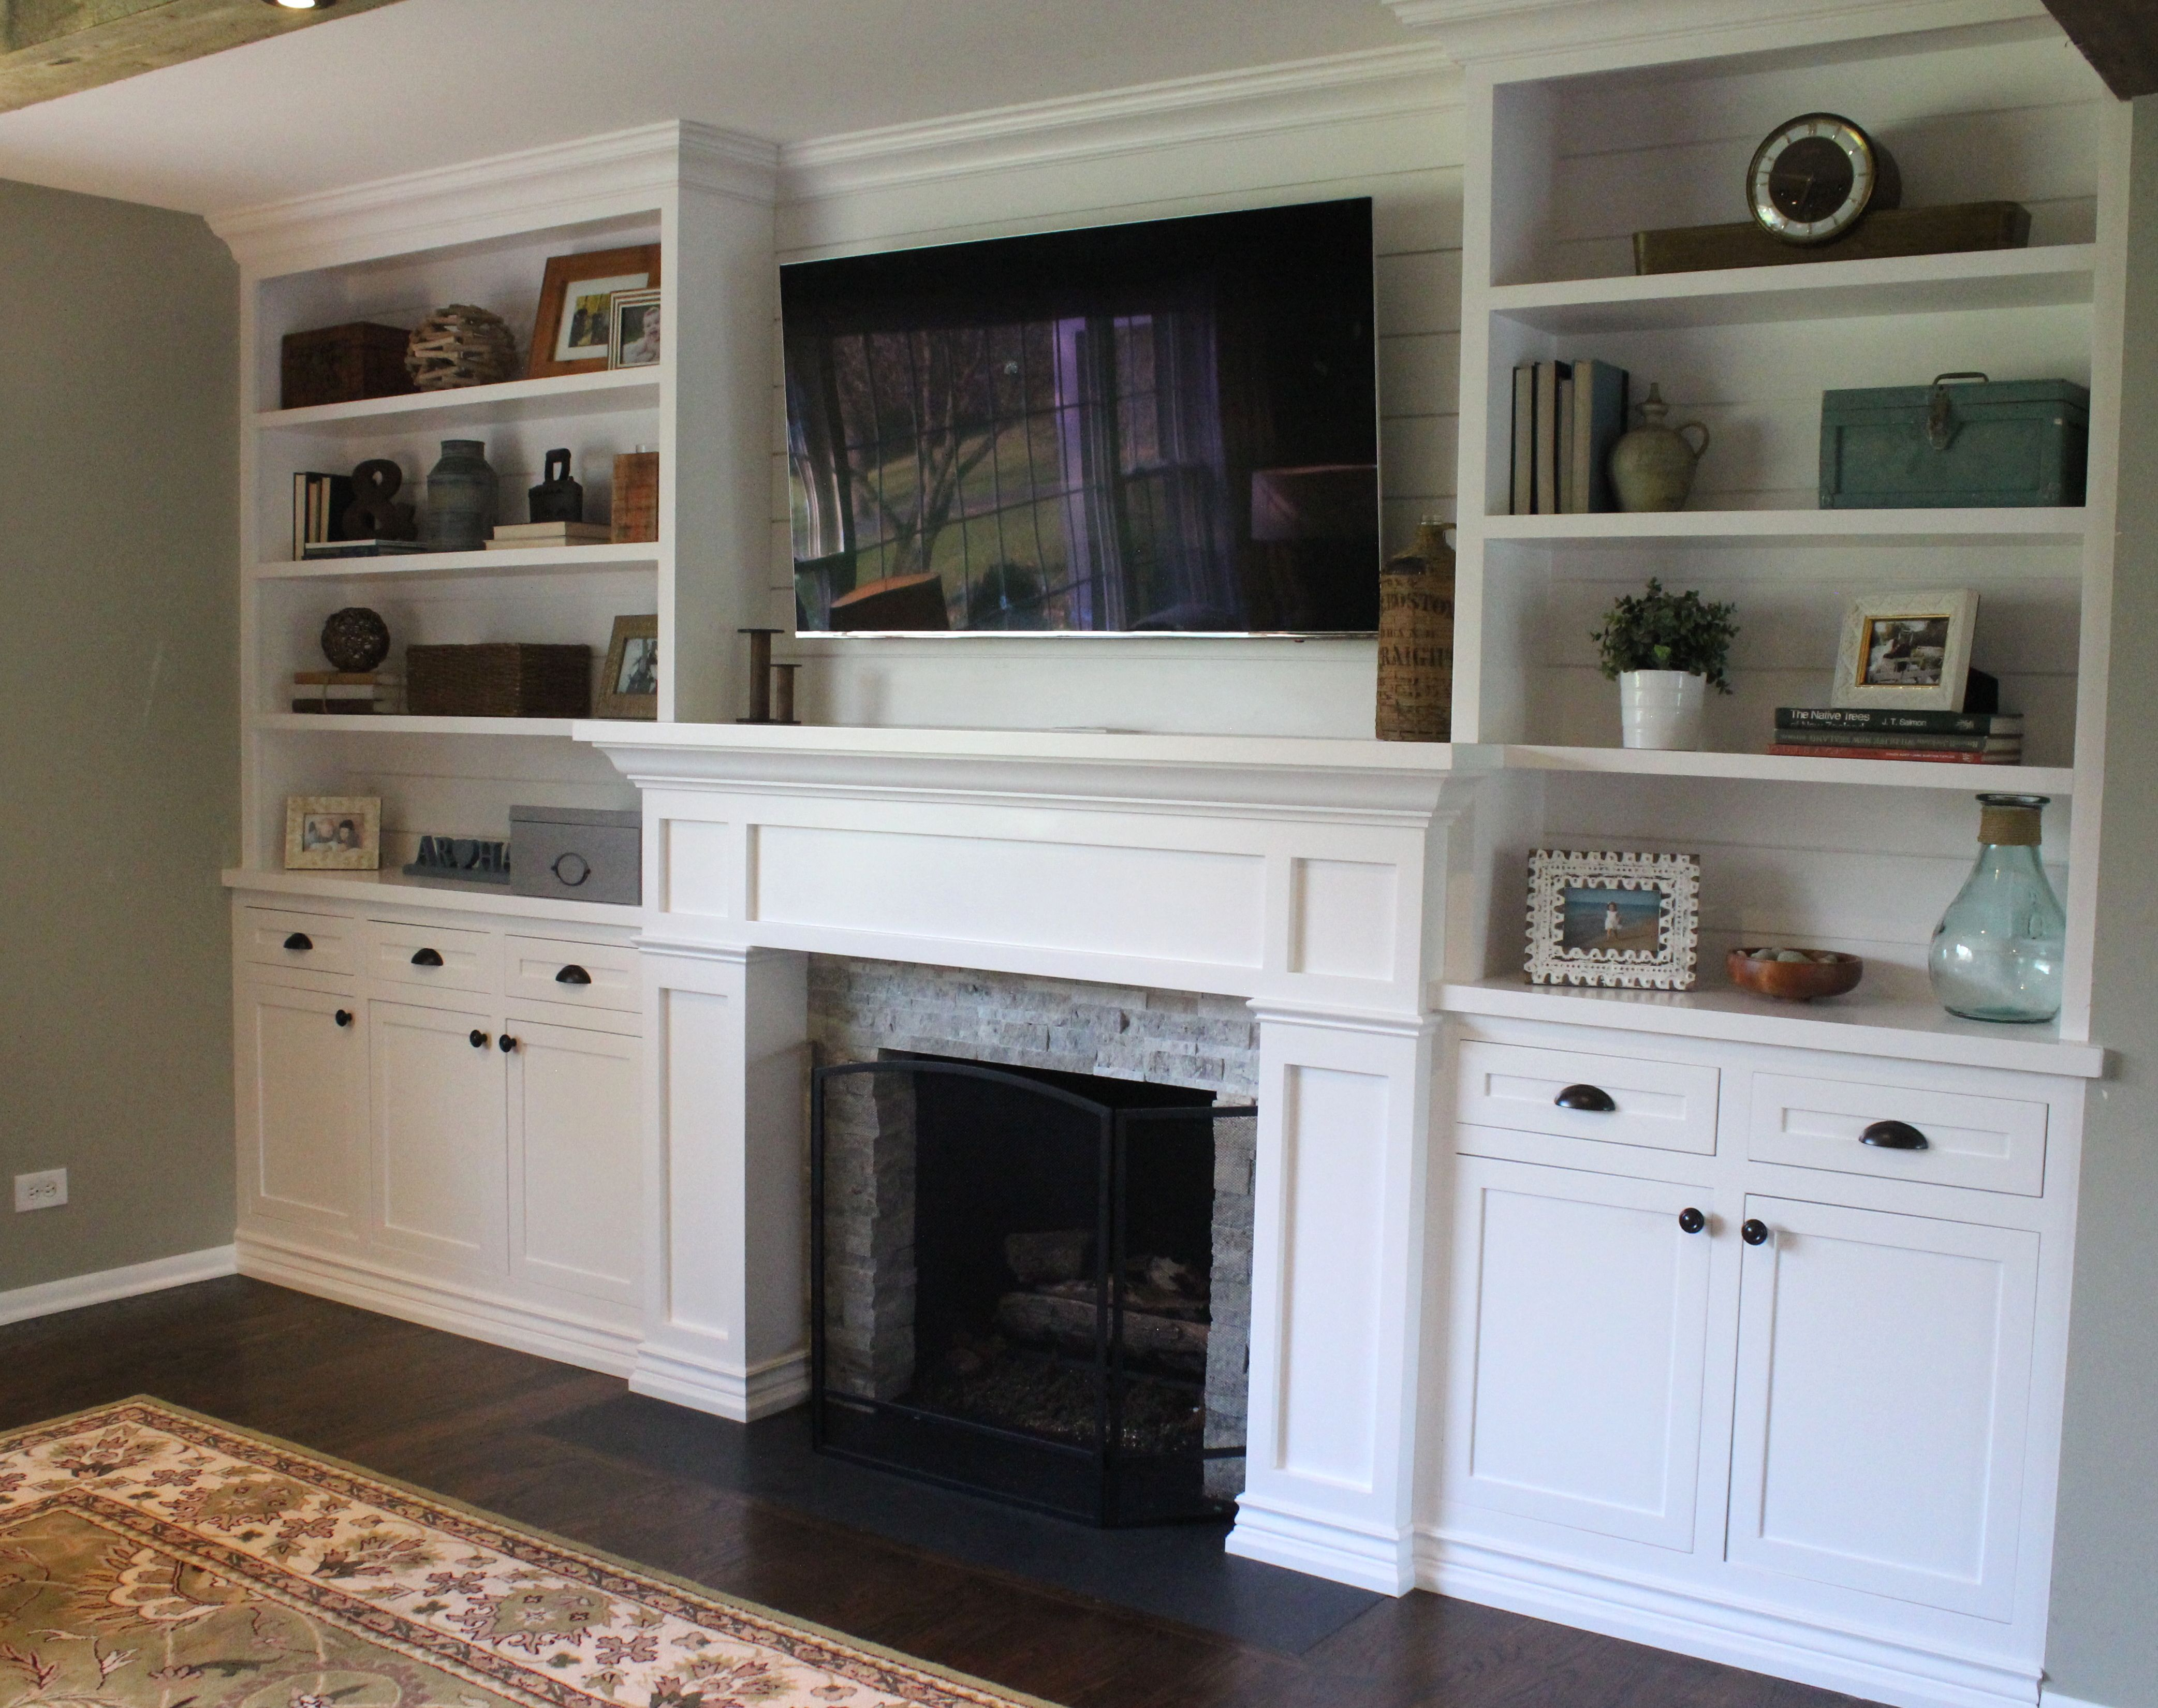 Our Living Room Built Ins Are Finally Done And They Look Amazing Endearing Living Room Built Ins Review